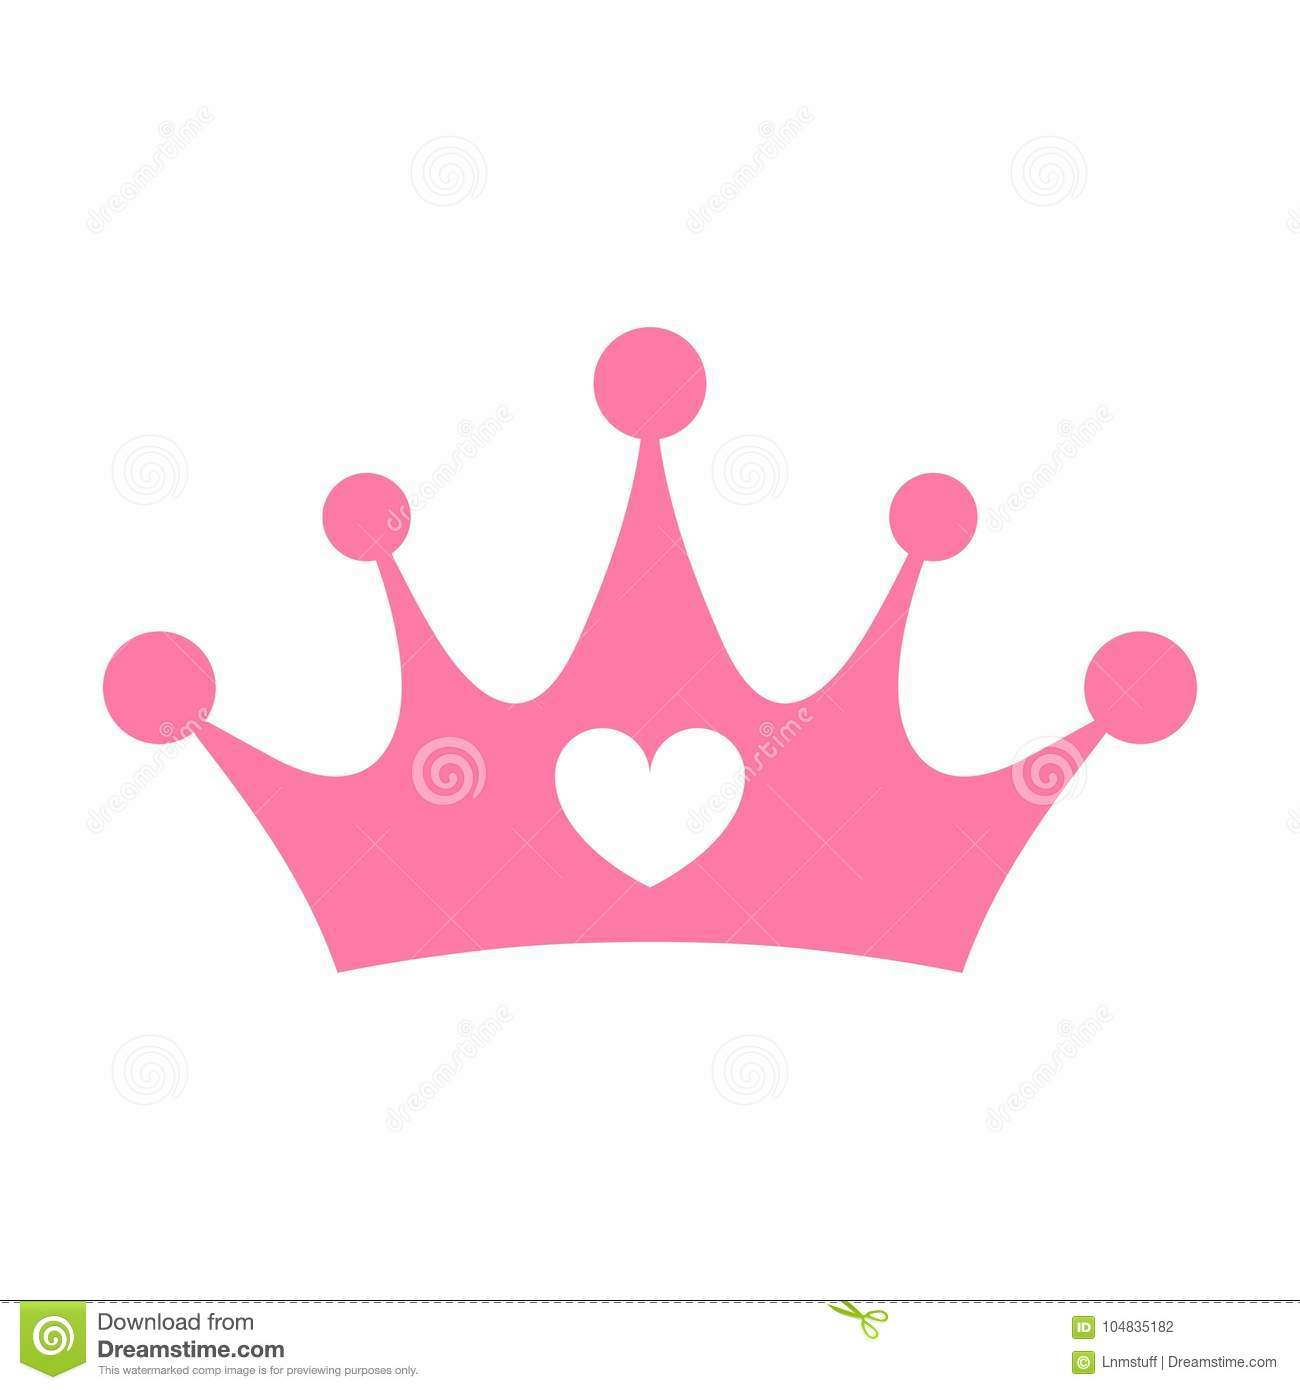 Princess Pink Crown Isolated Png Stock Photo Illustration Of Fairytale Element 104835182 Gold crown icon in cartoon style isolated vector illustration. https www dreamstime com princess pink crown isolated png cartoon simple style illustration beautiful transparent background graphic element image104835182